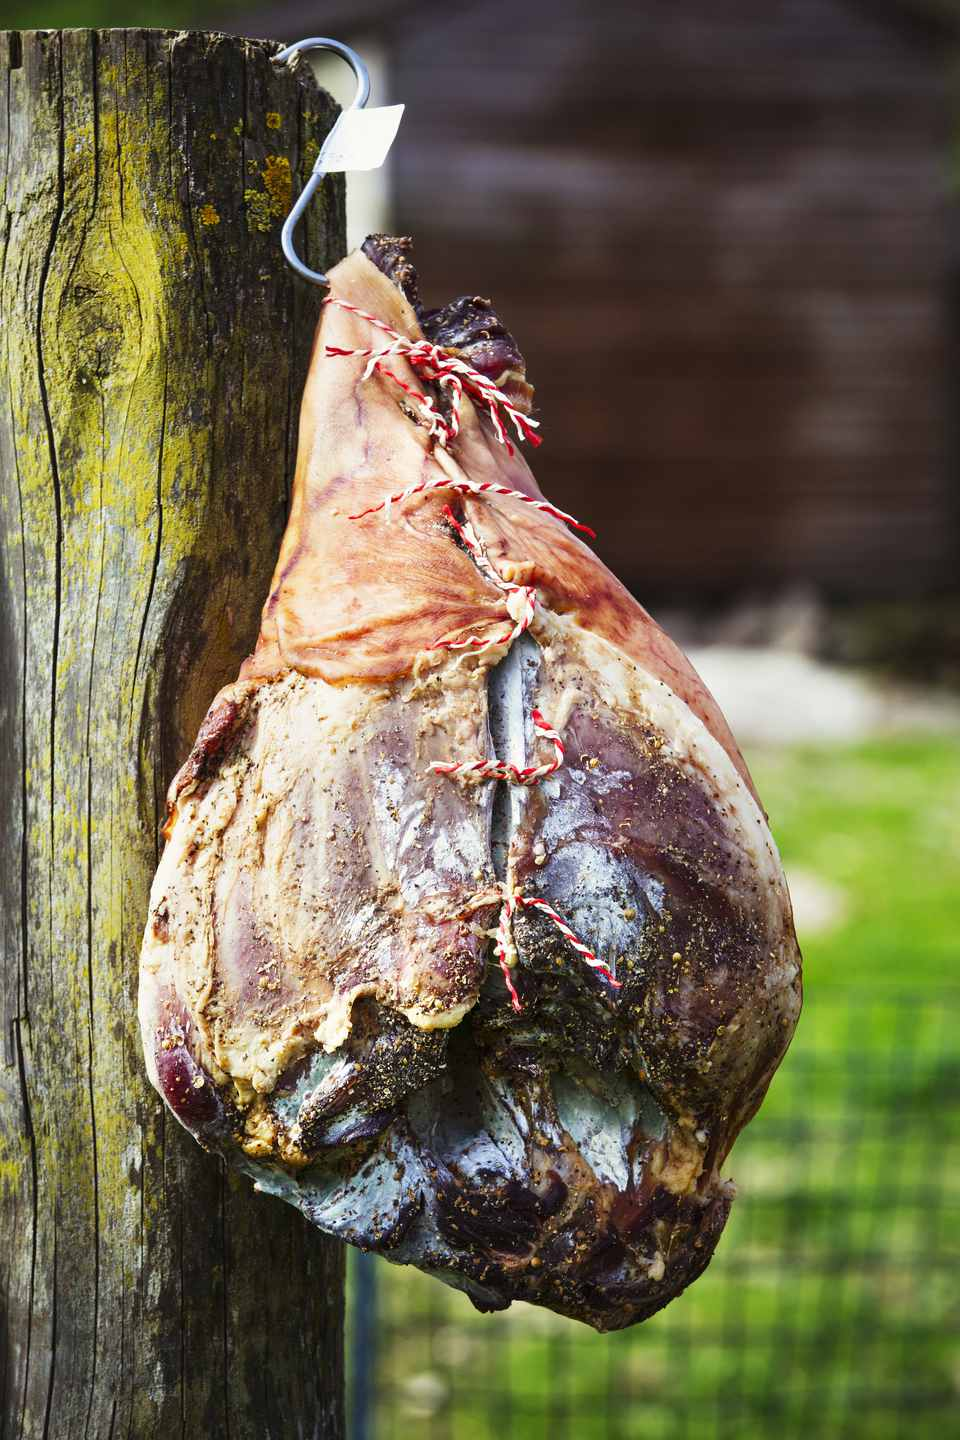 Close up of a cured ham hanging on a wooden fence.